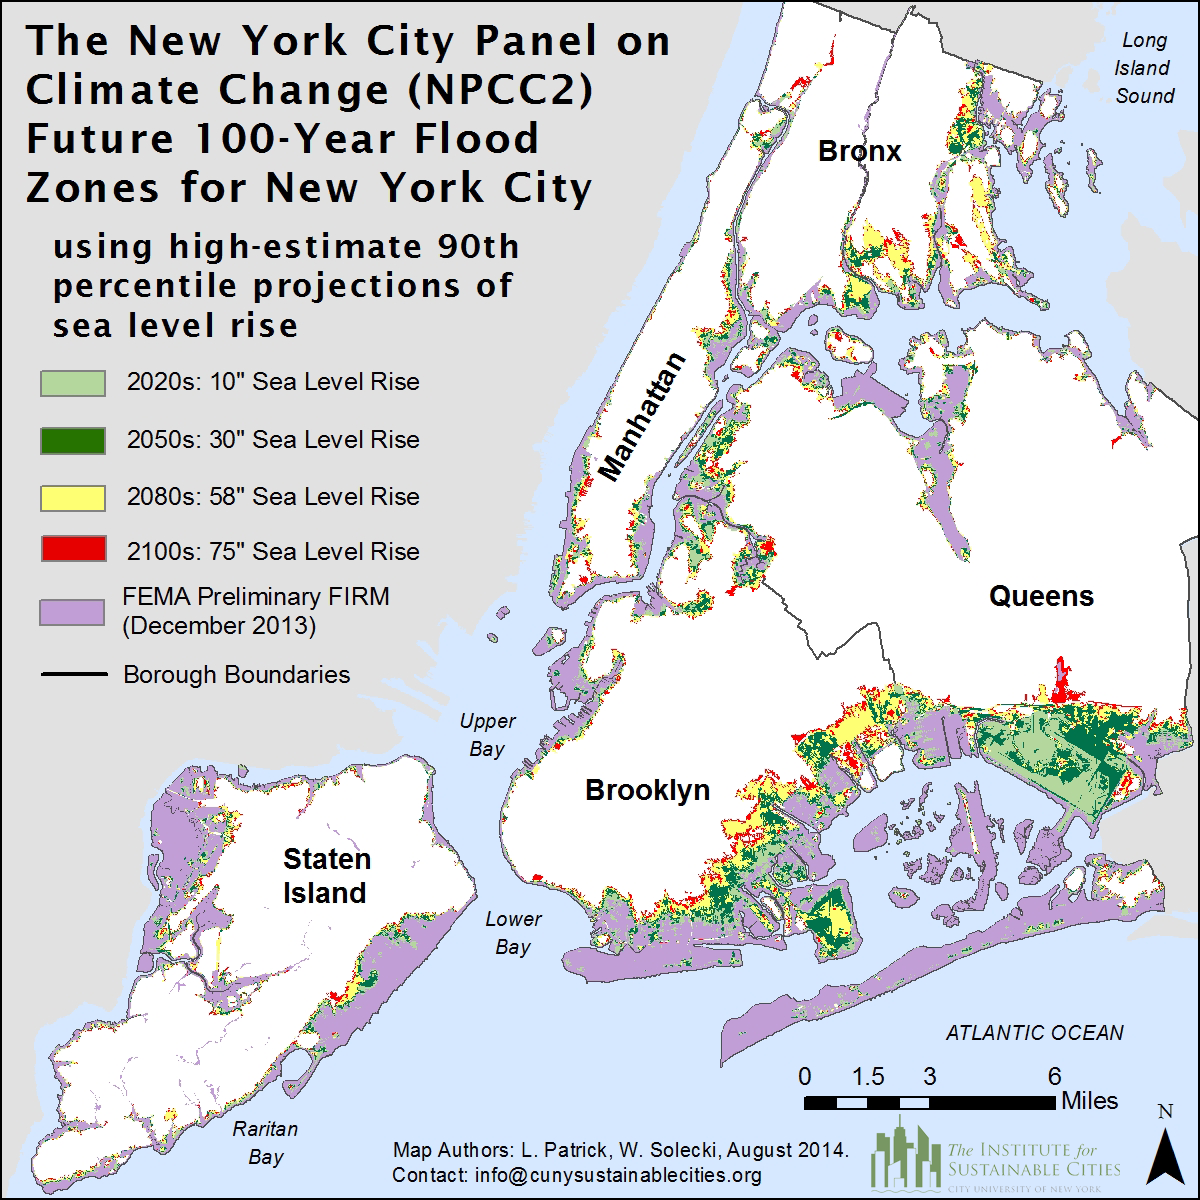 sea level rise maps with Nasa Science Leads New York City Climate Change 2015 Report on Ronda mountains additionally Alaska Erosion Climate Change as well Philippines Discover Tagaytay 17 moreover 10 Warmest Years Globally additionally Co2 And Rising Global Temperatures.